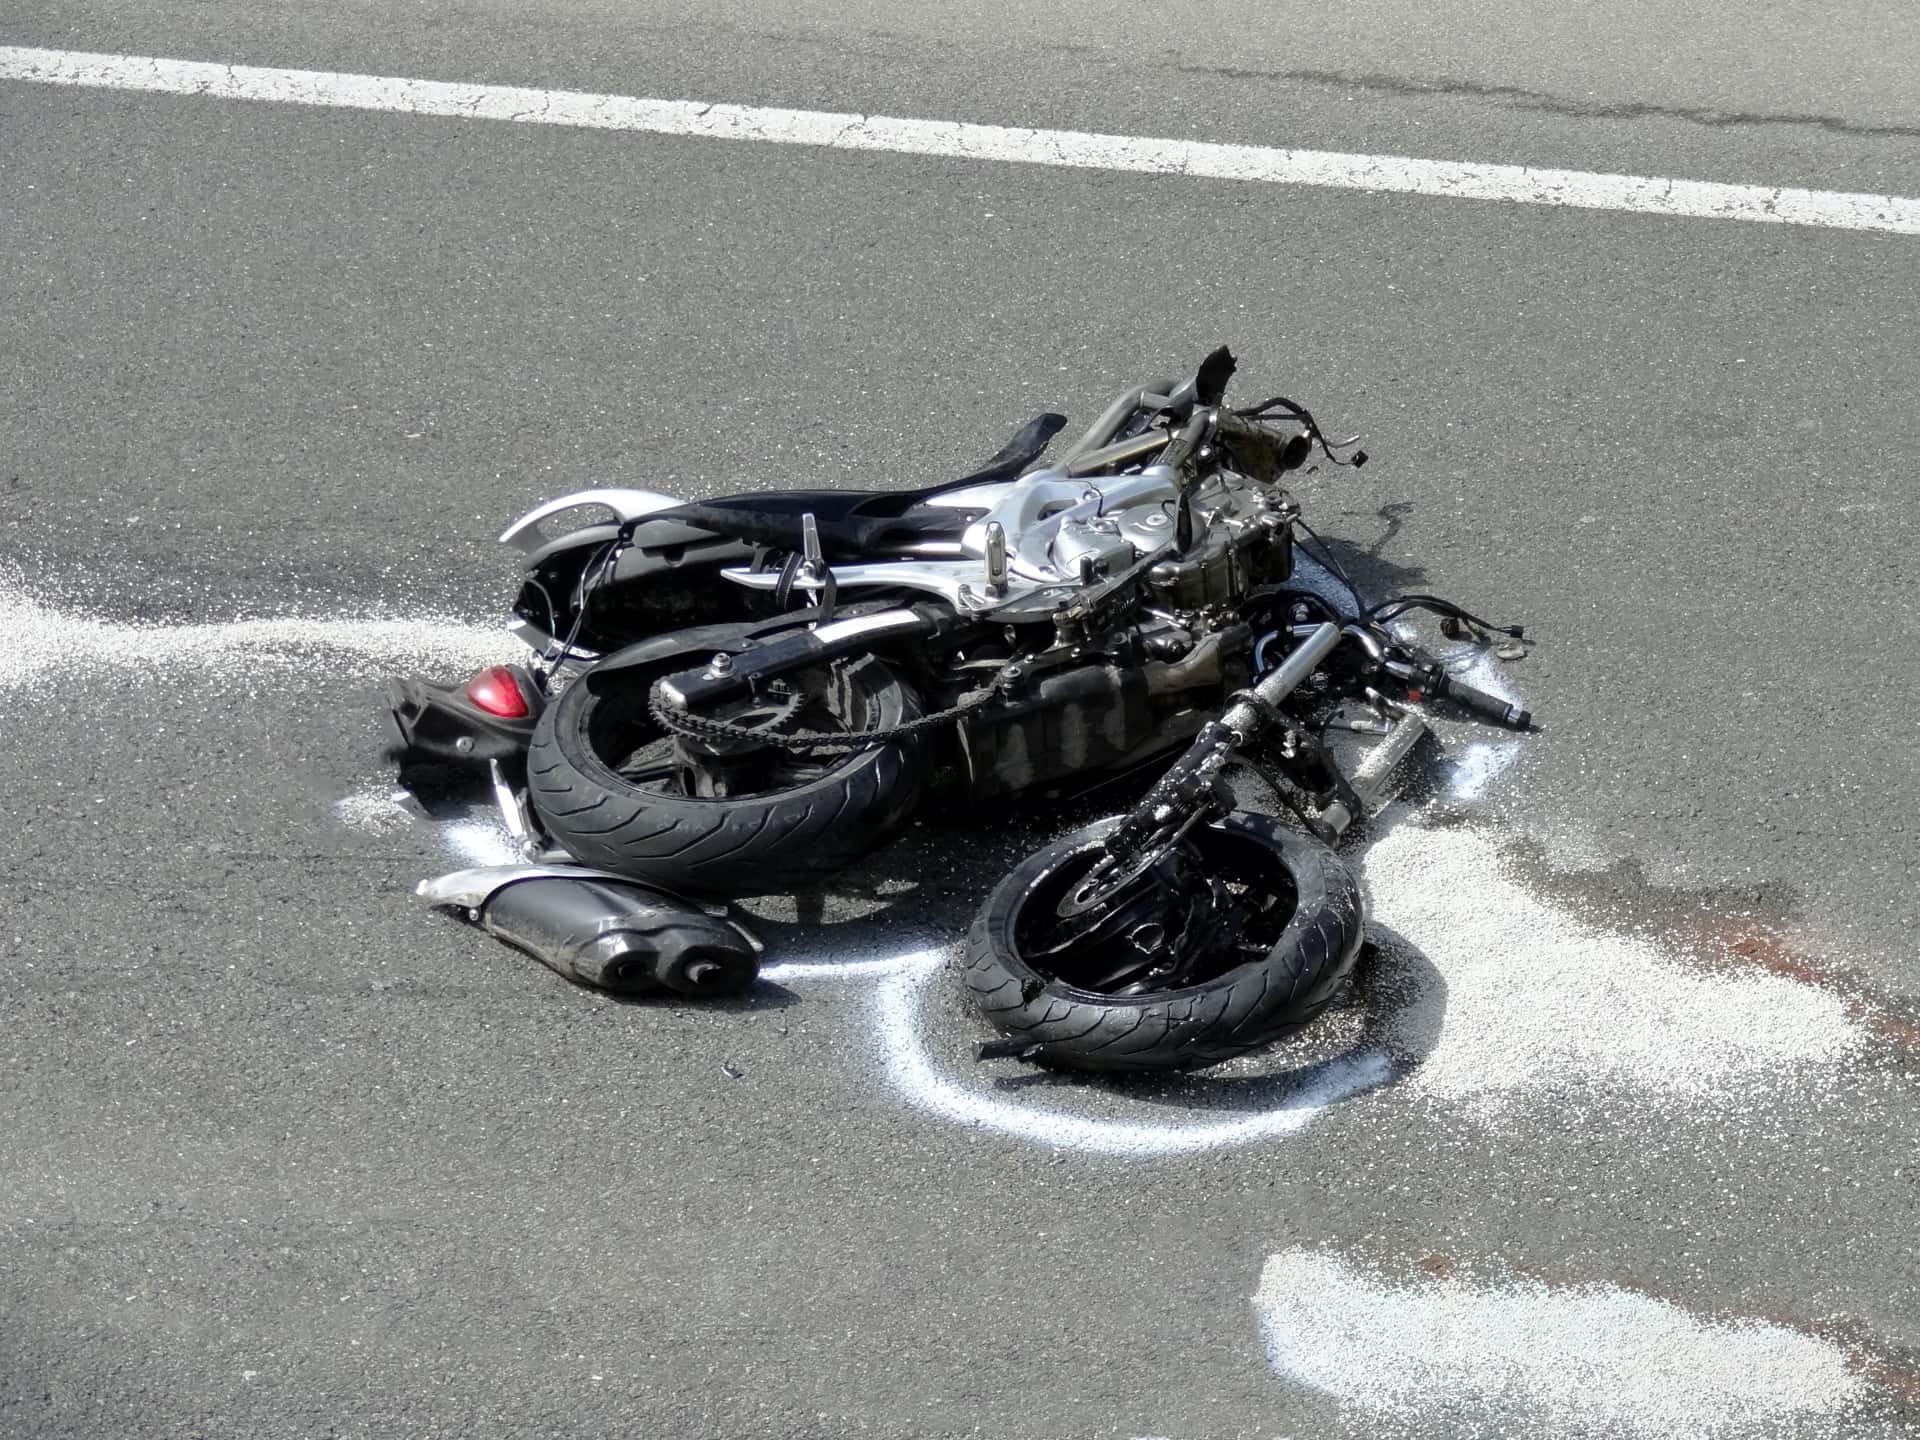 Injured Motorcyclist Awarded Over $20 Million